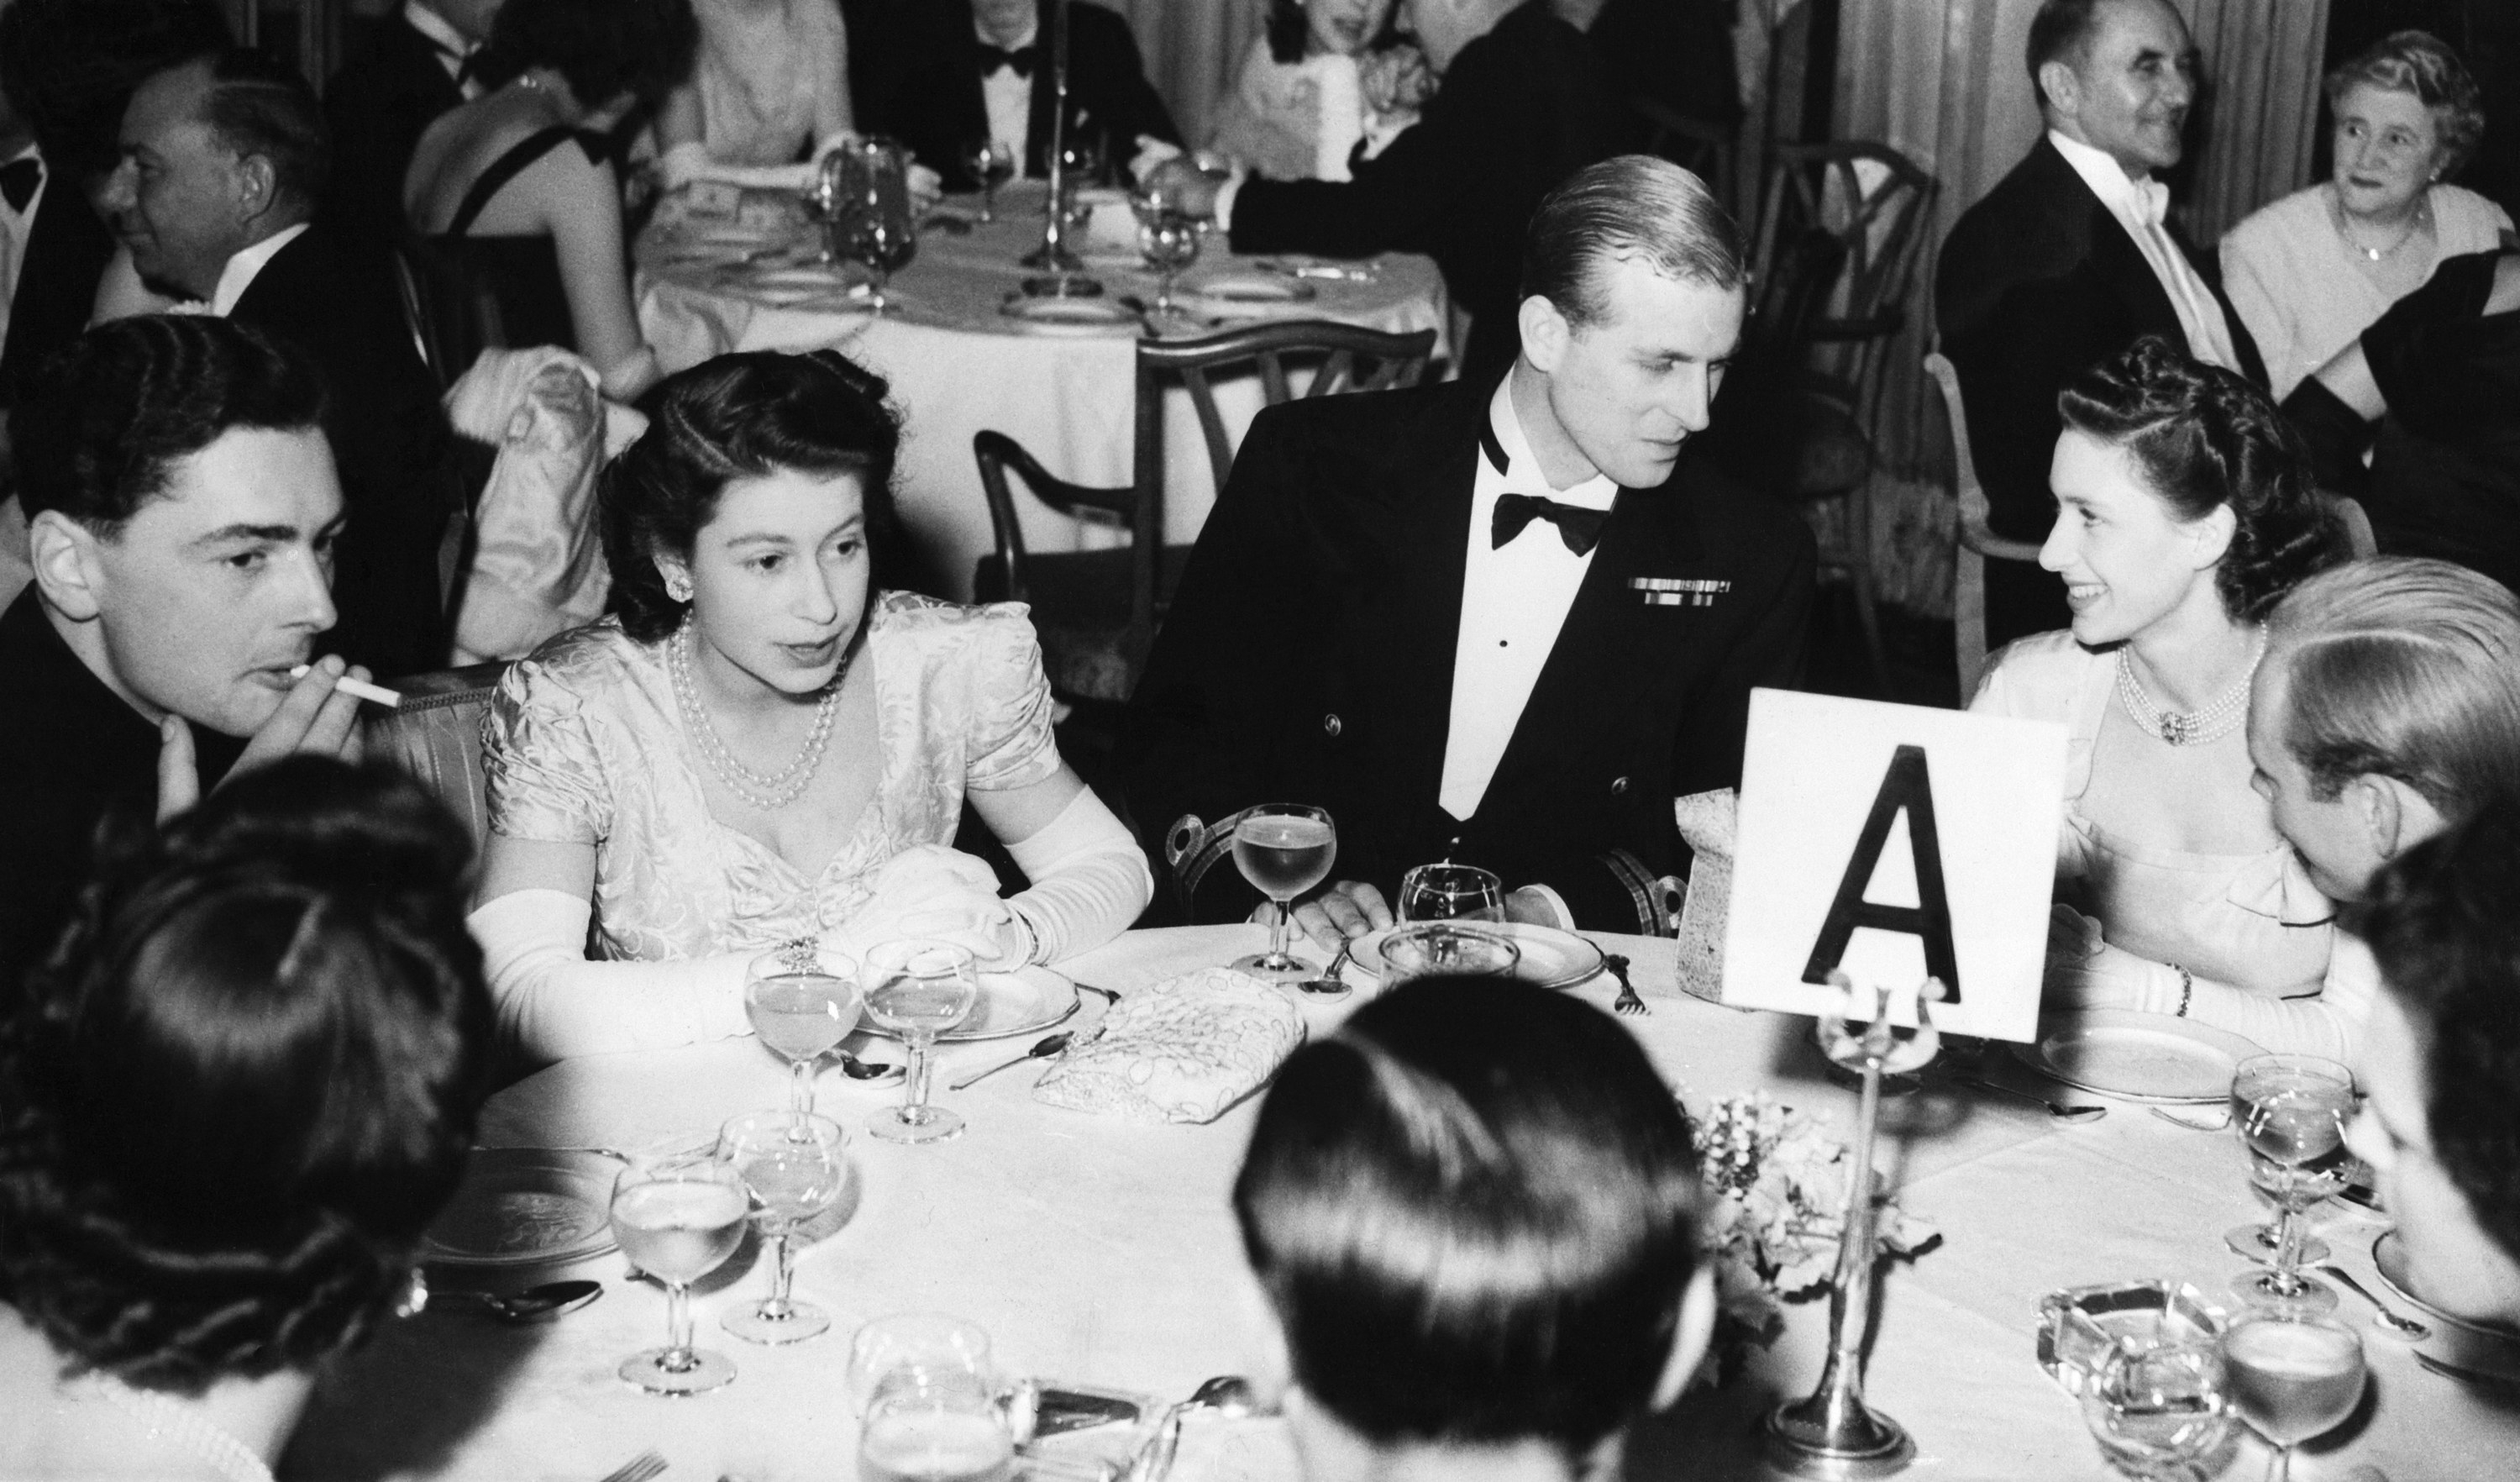 The Queen and the duke at a table at a dinner party with other guests